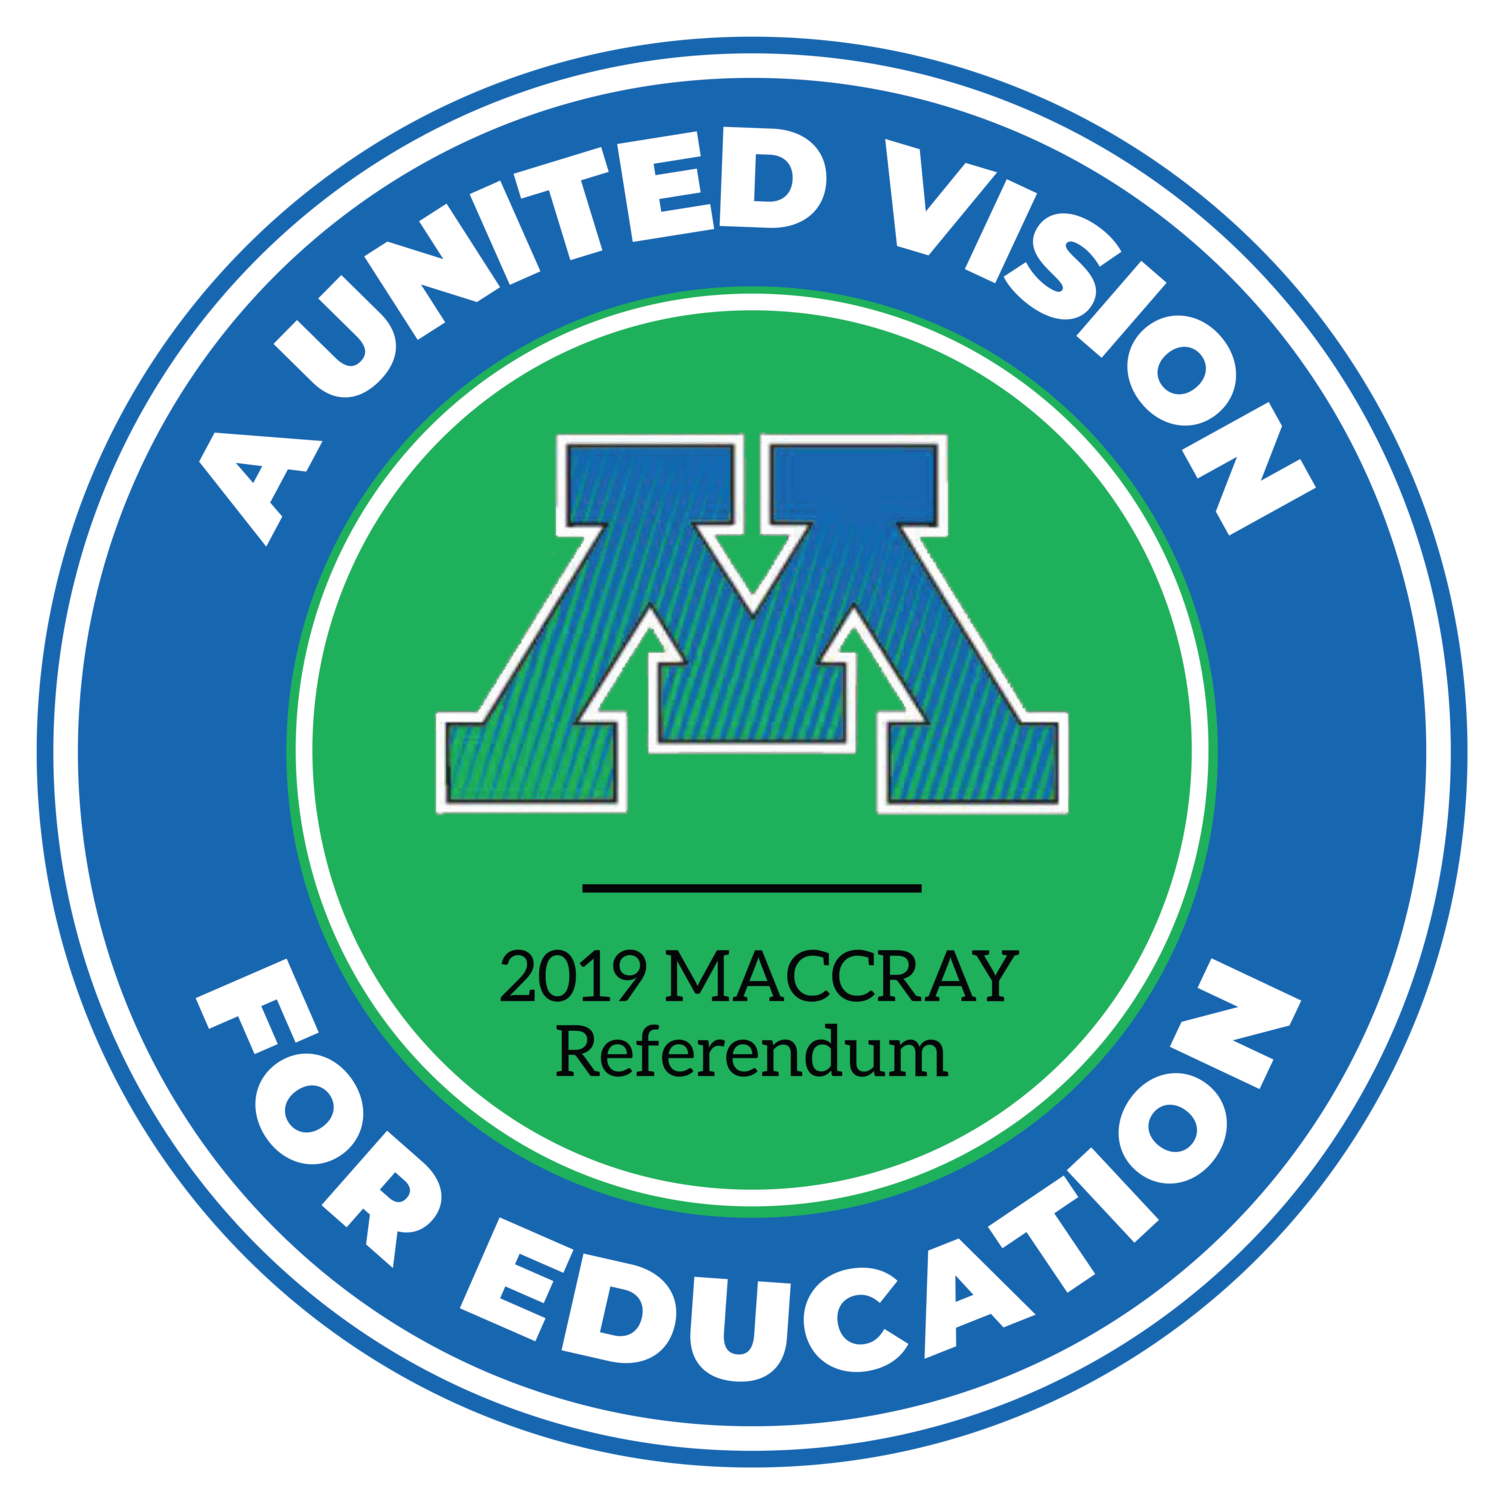 A United Vision for Education